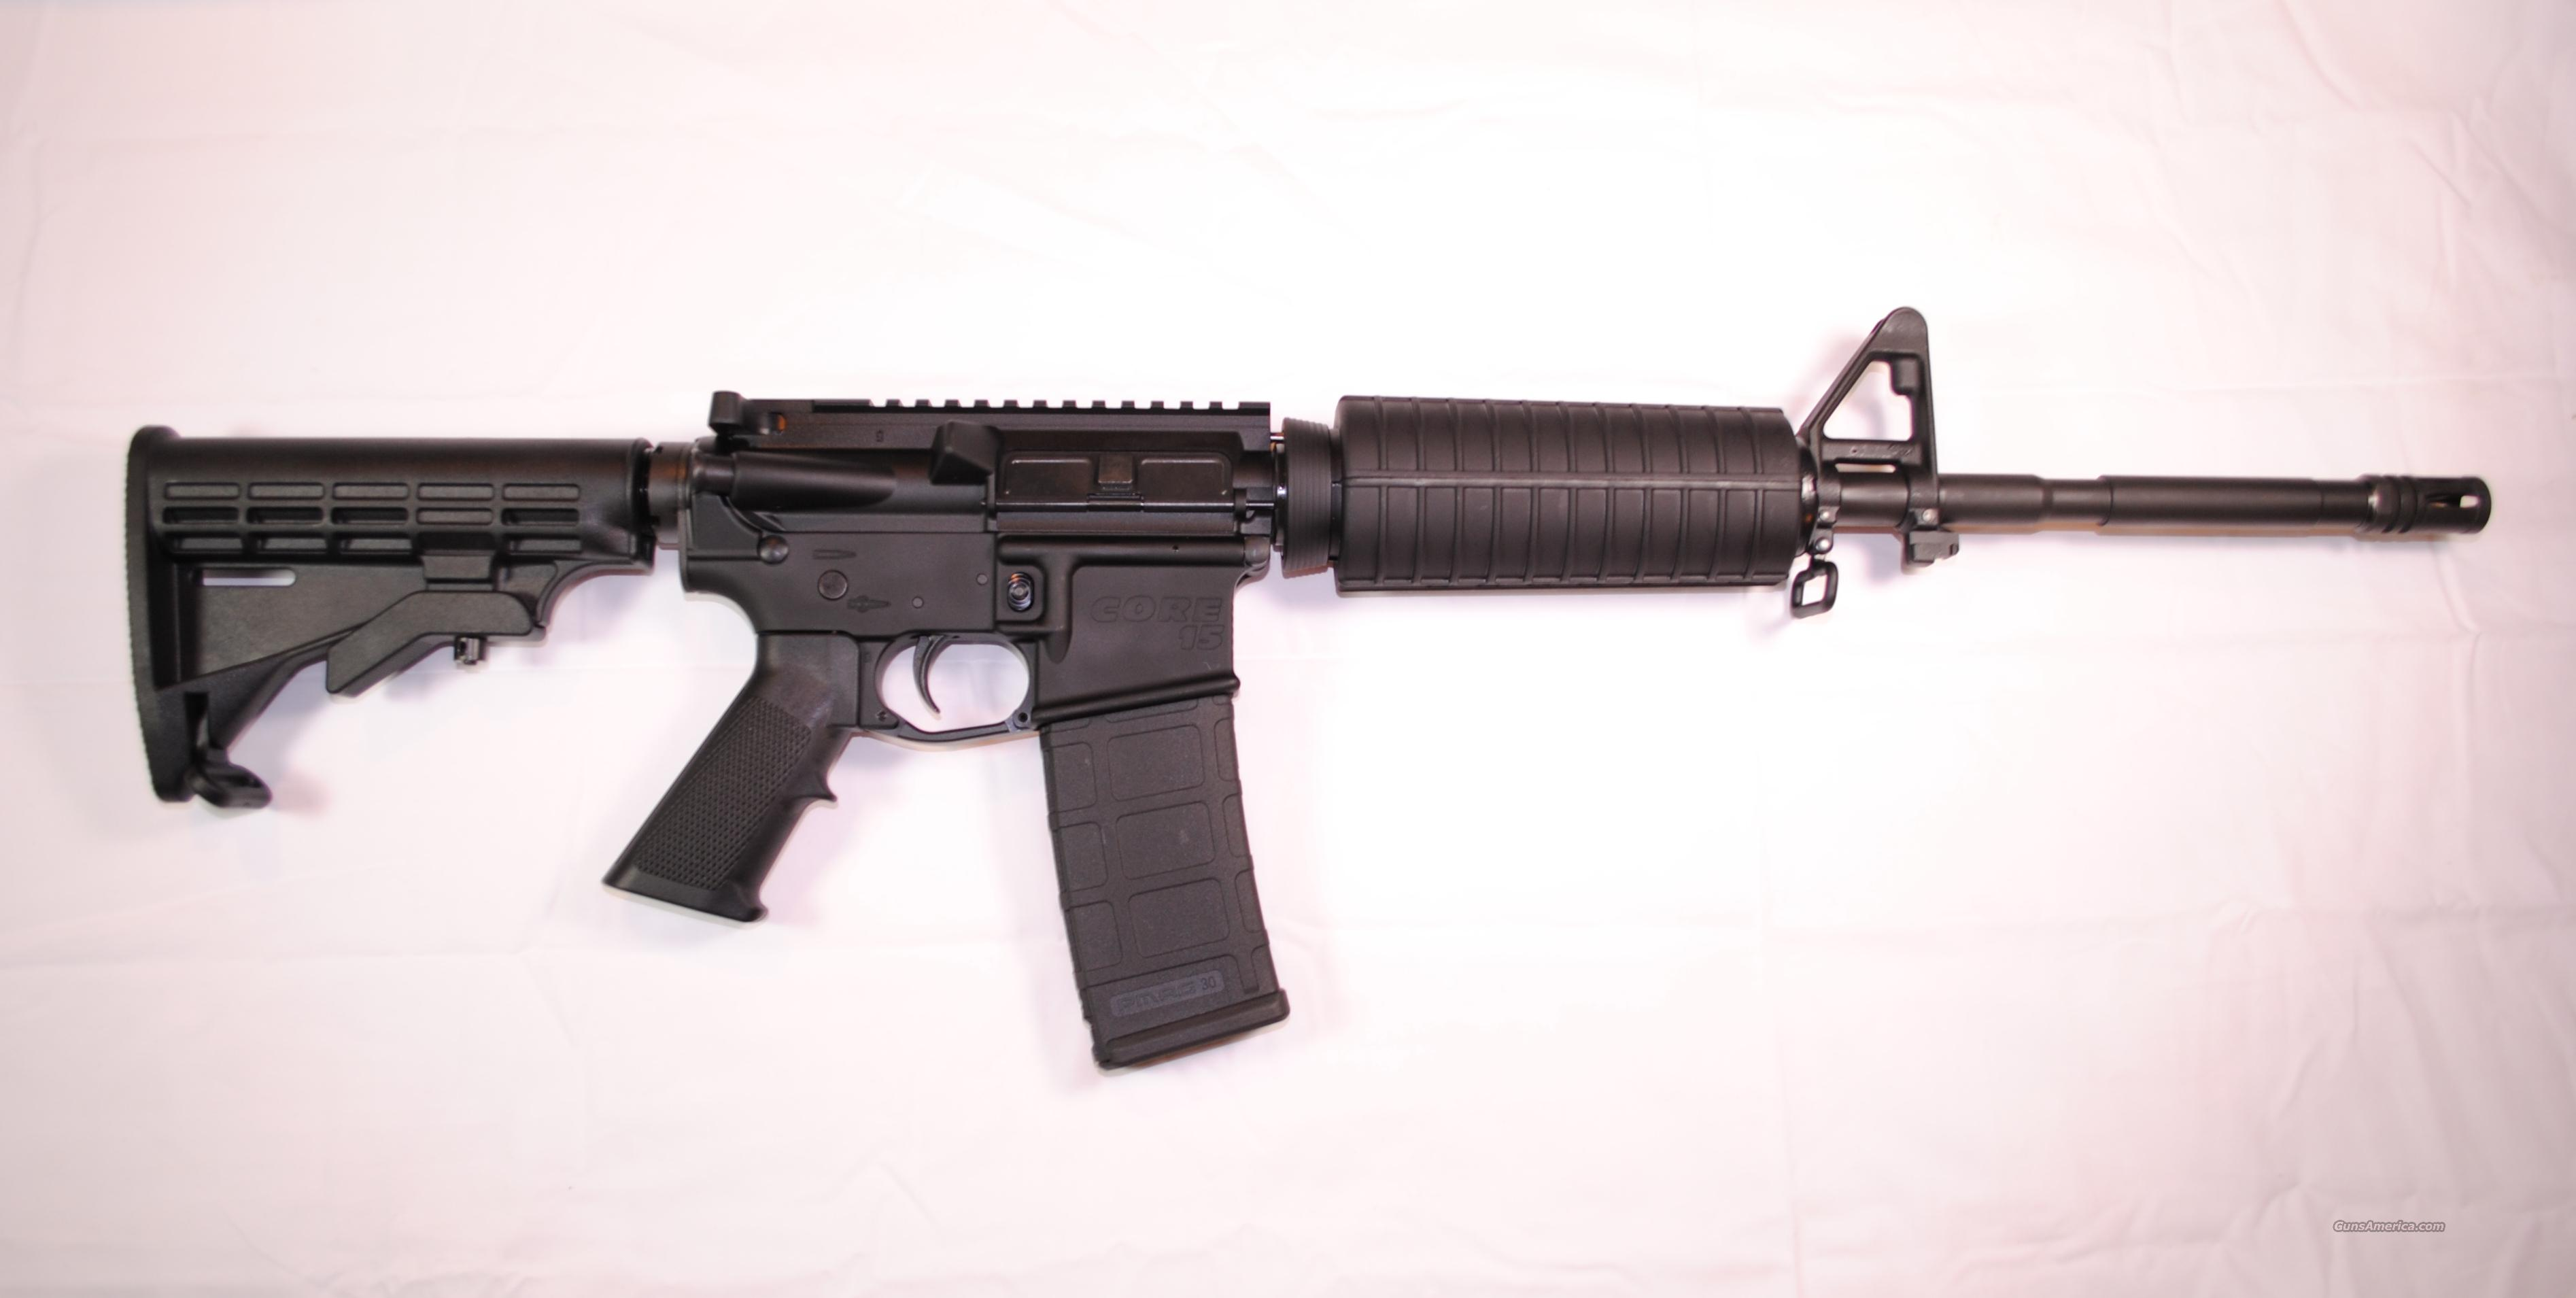 CORE 15 AR-15 M4  Guns > Rifles > AR-15 Rifles - Small Manufacturers > Complete Rifle